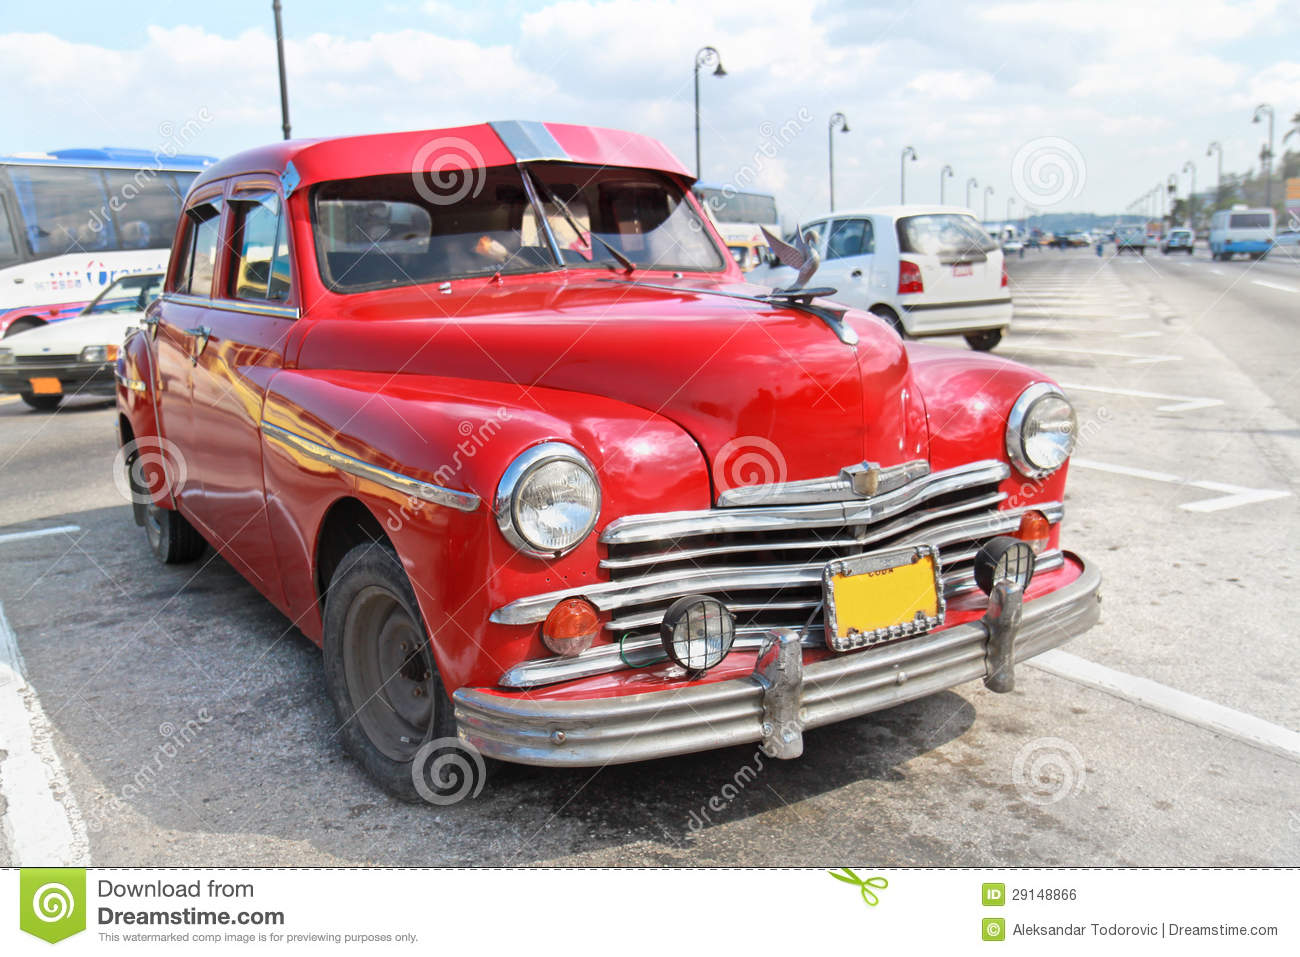 1959 plymouth sport fury interior related keywords - Classic Red Plymouth In Havana Cuba Royalty Free Stock Image